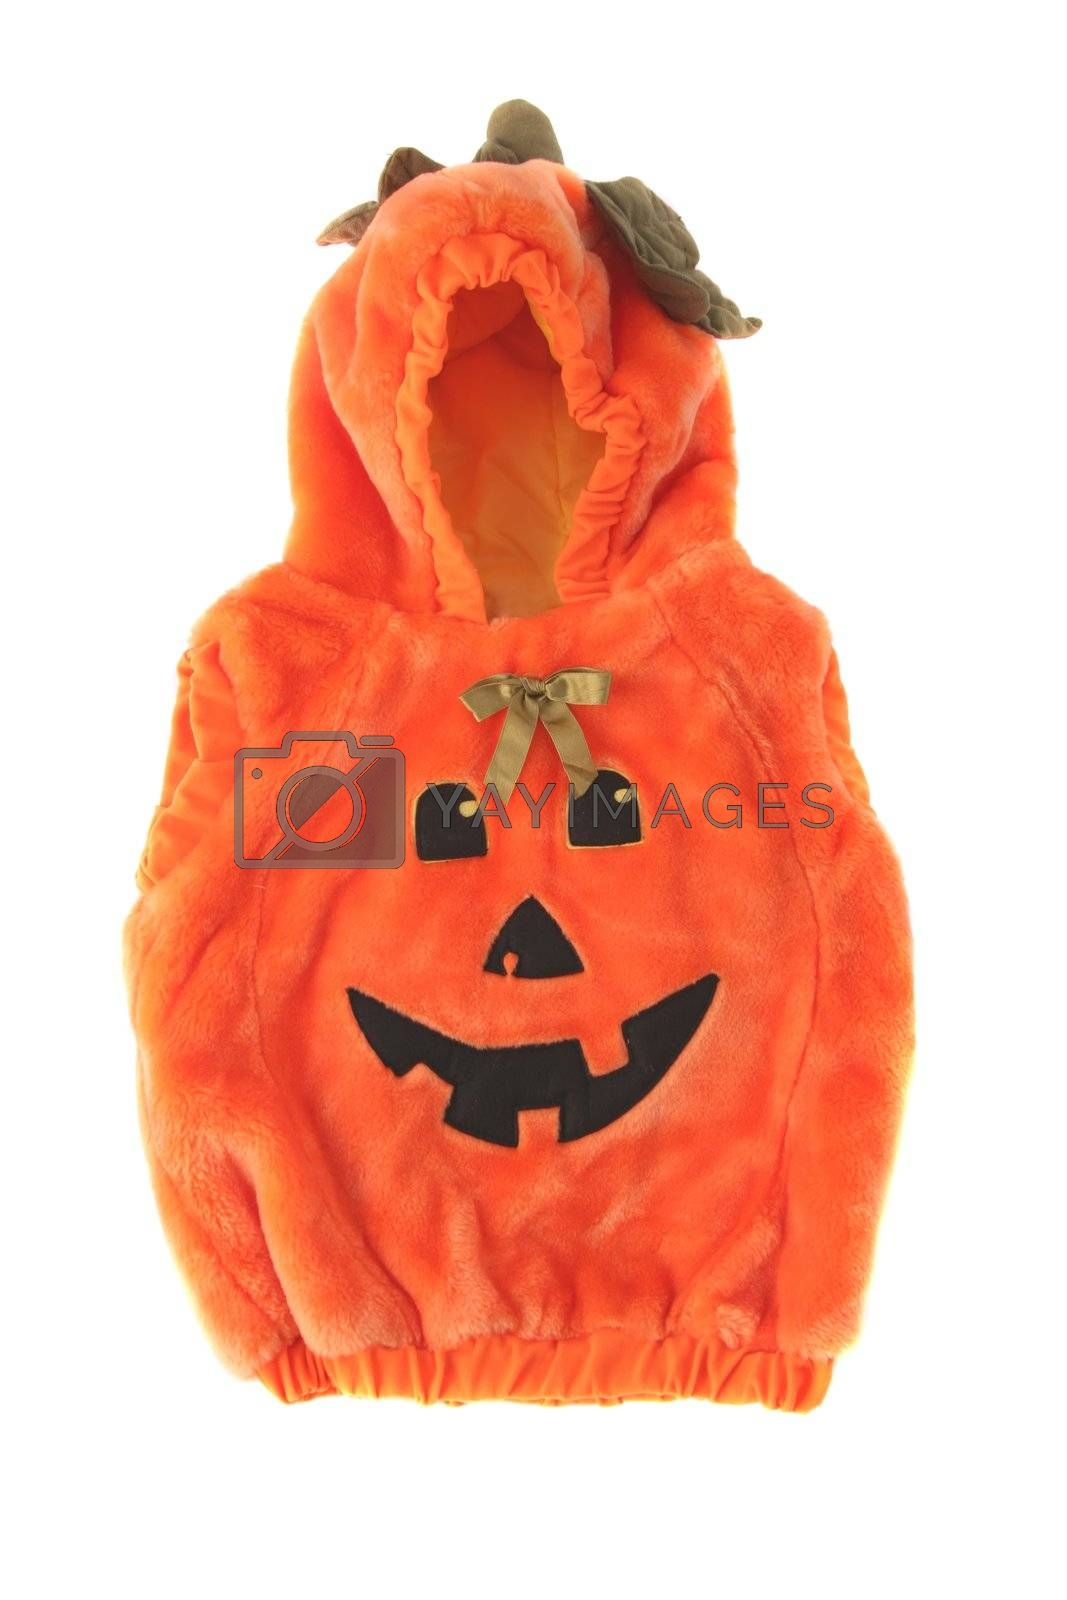 Royalty free image of Halloween pumpkin costume by scrappinstacy